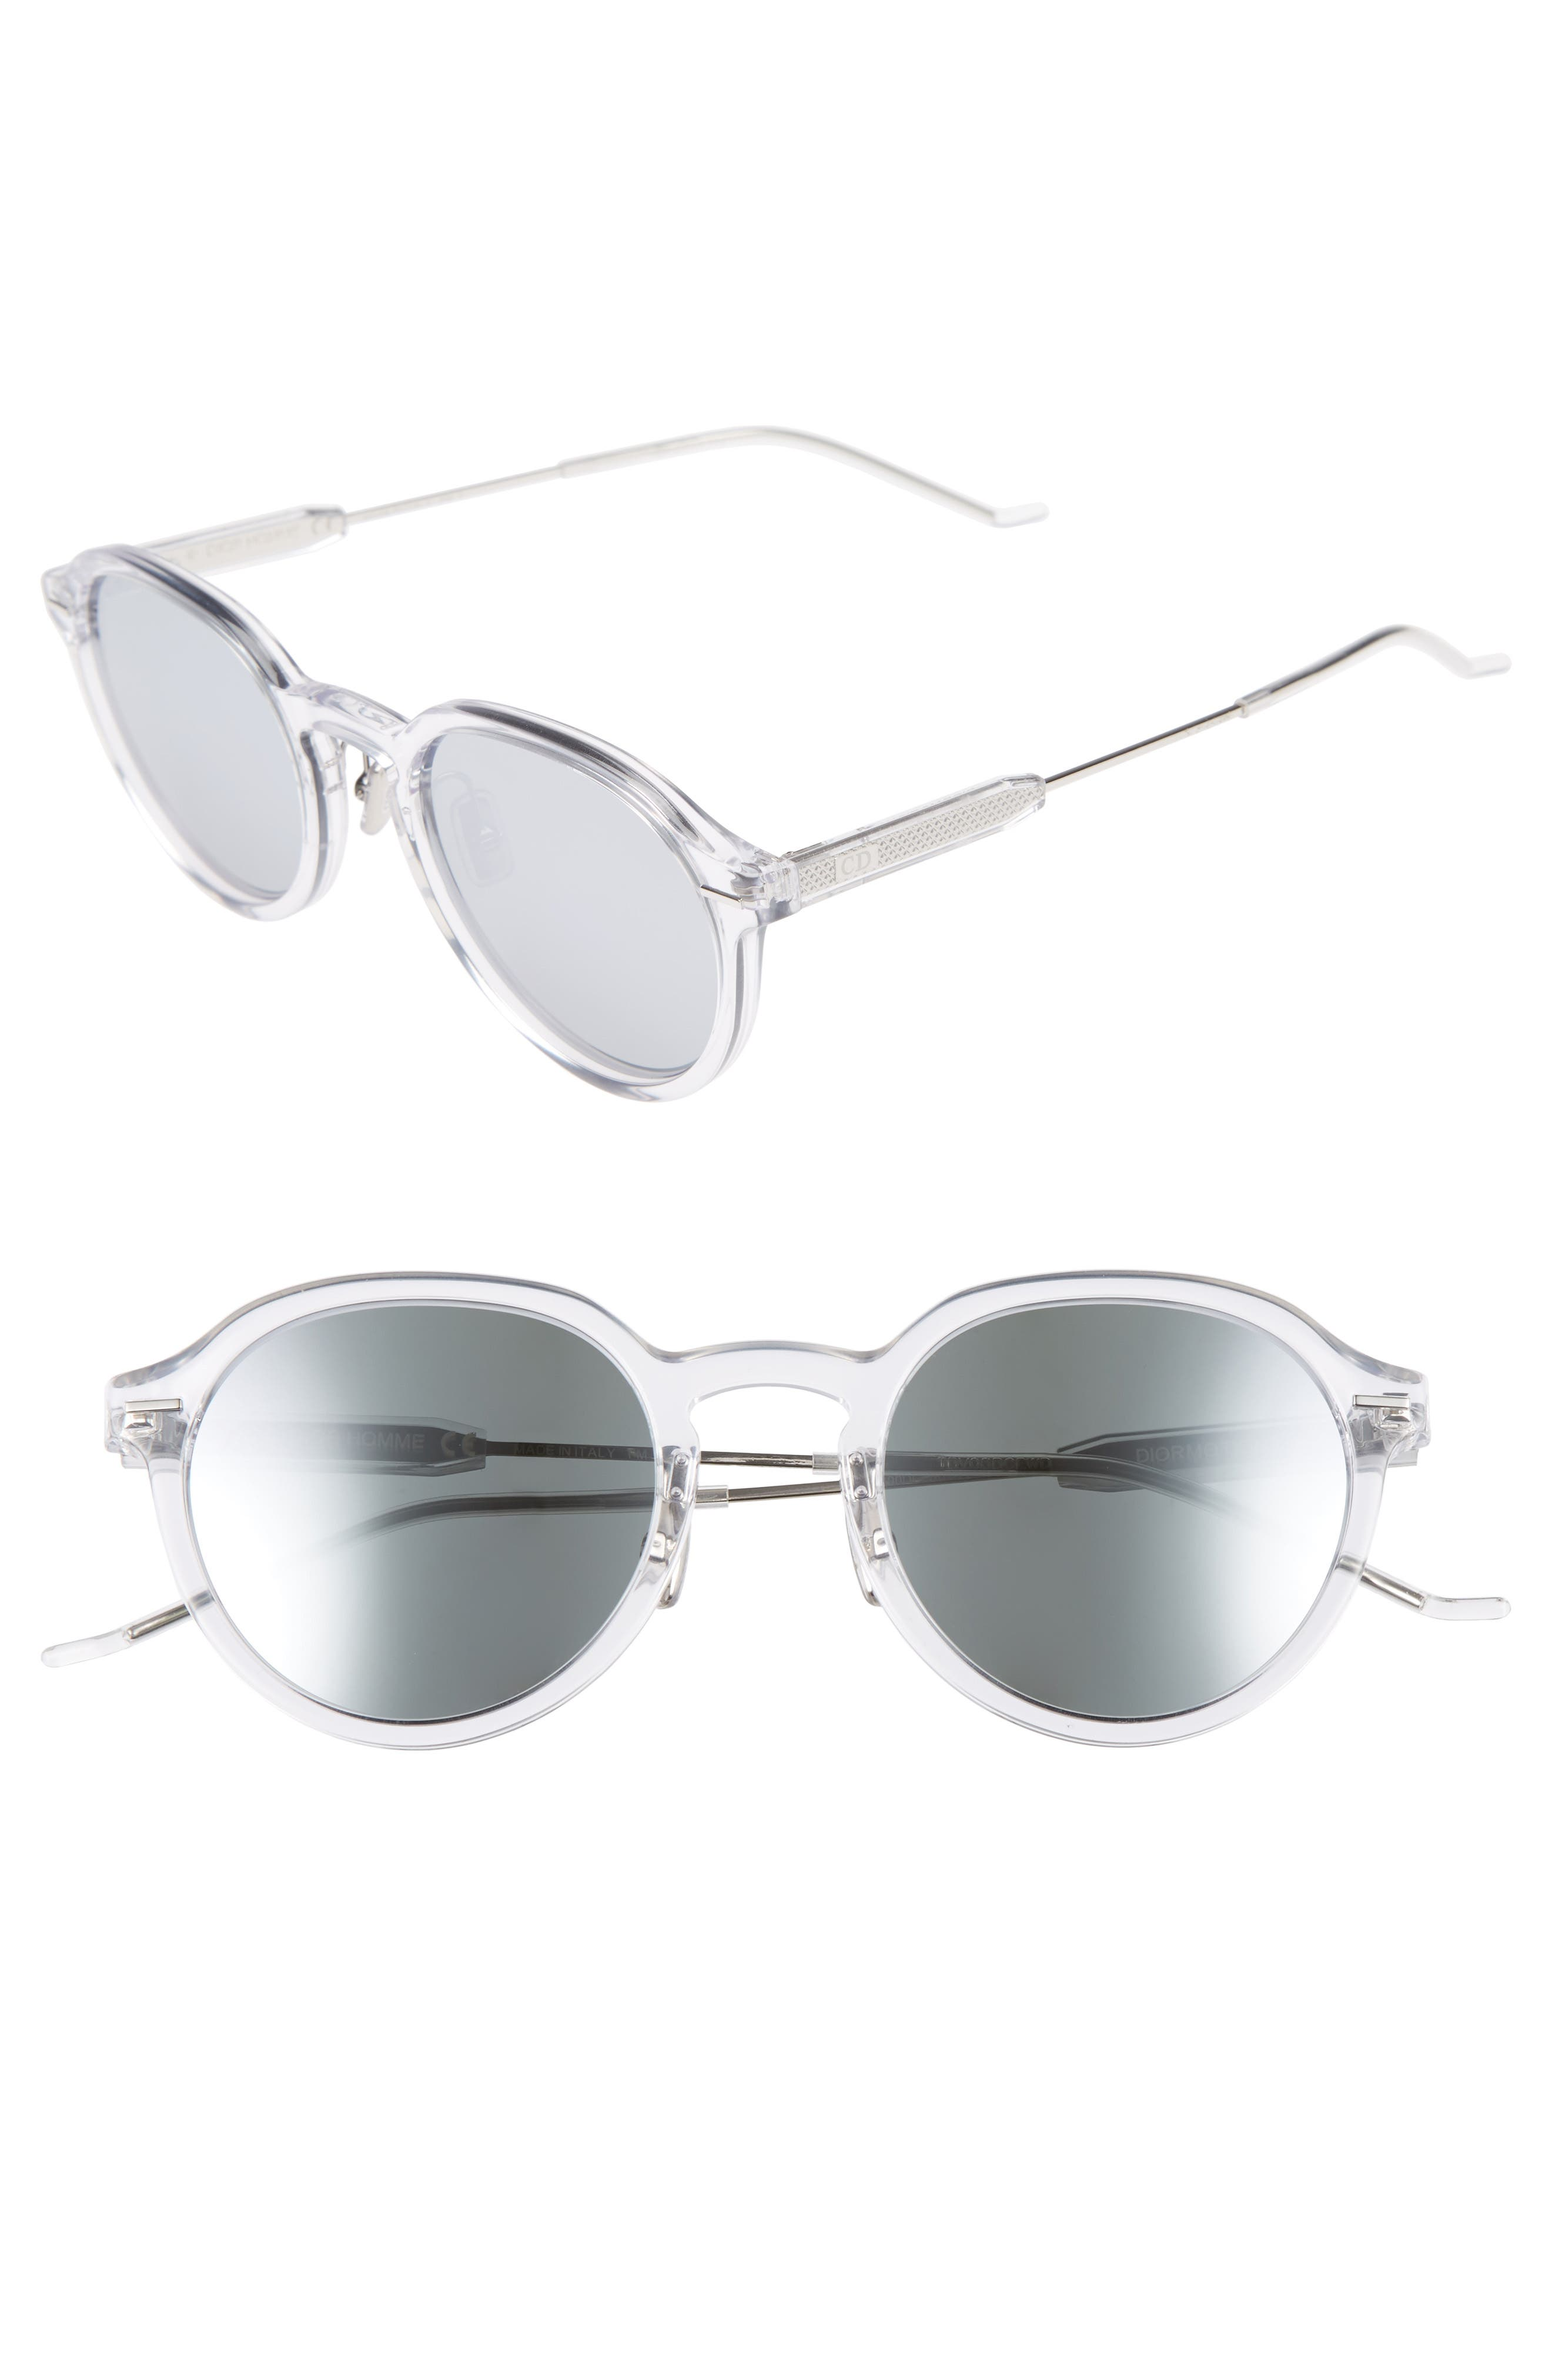 Motion 2 50mm Sunglasses,                             Main thumbnail 1, color,                             CRYSTAL/ SILVER MIRROR